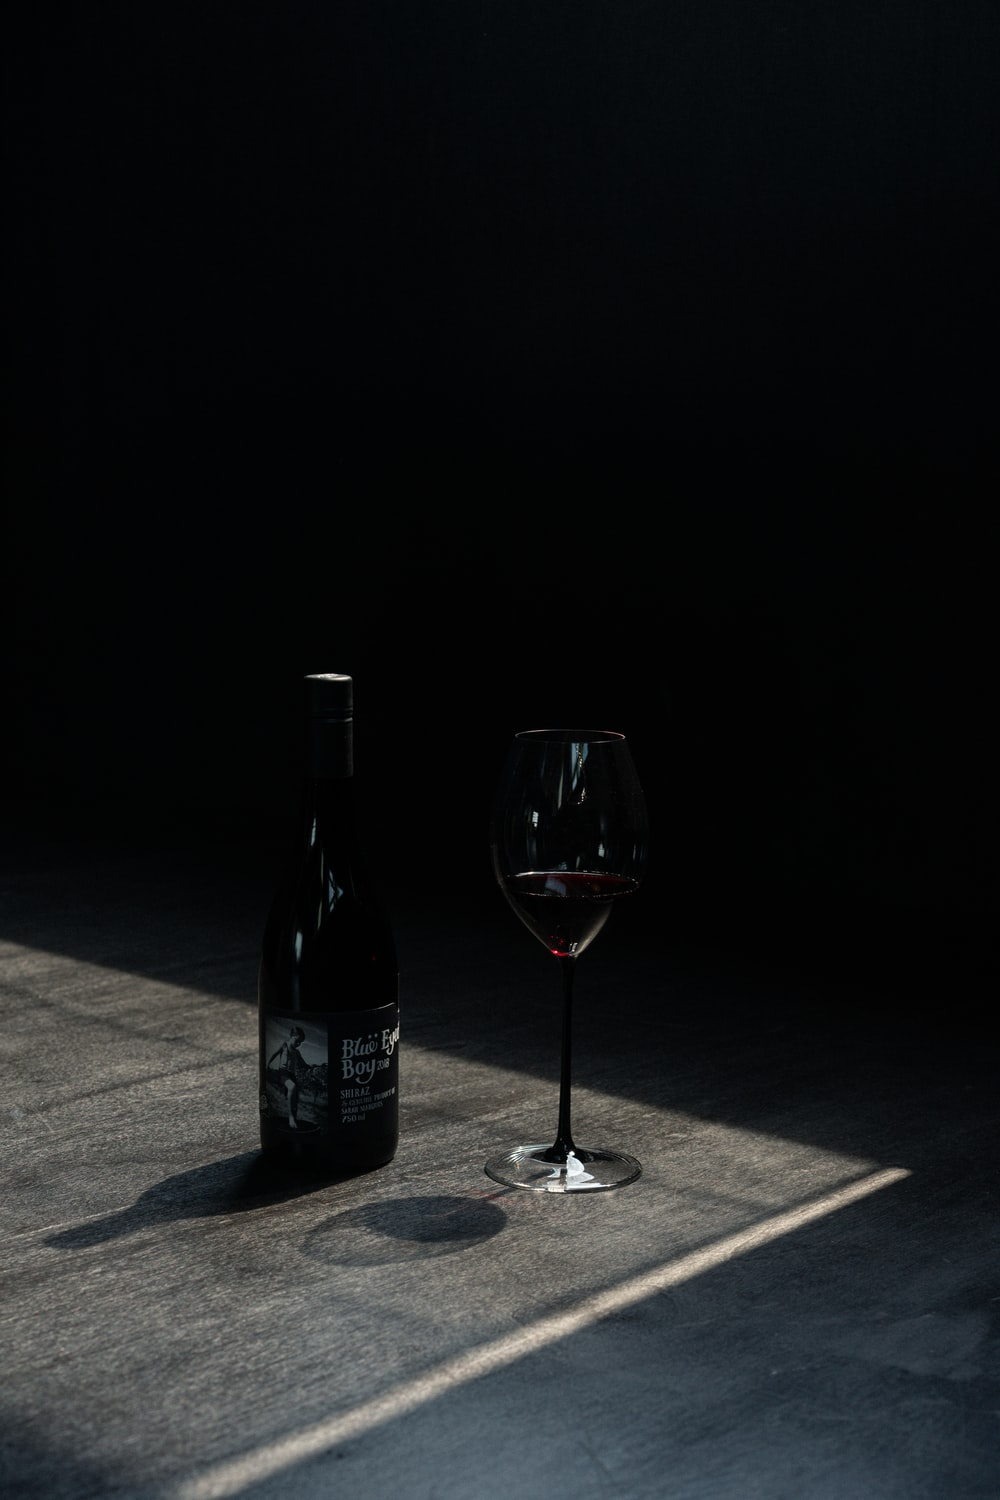 wine bottle beside wine glass on table